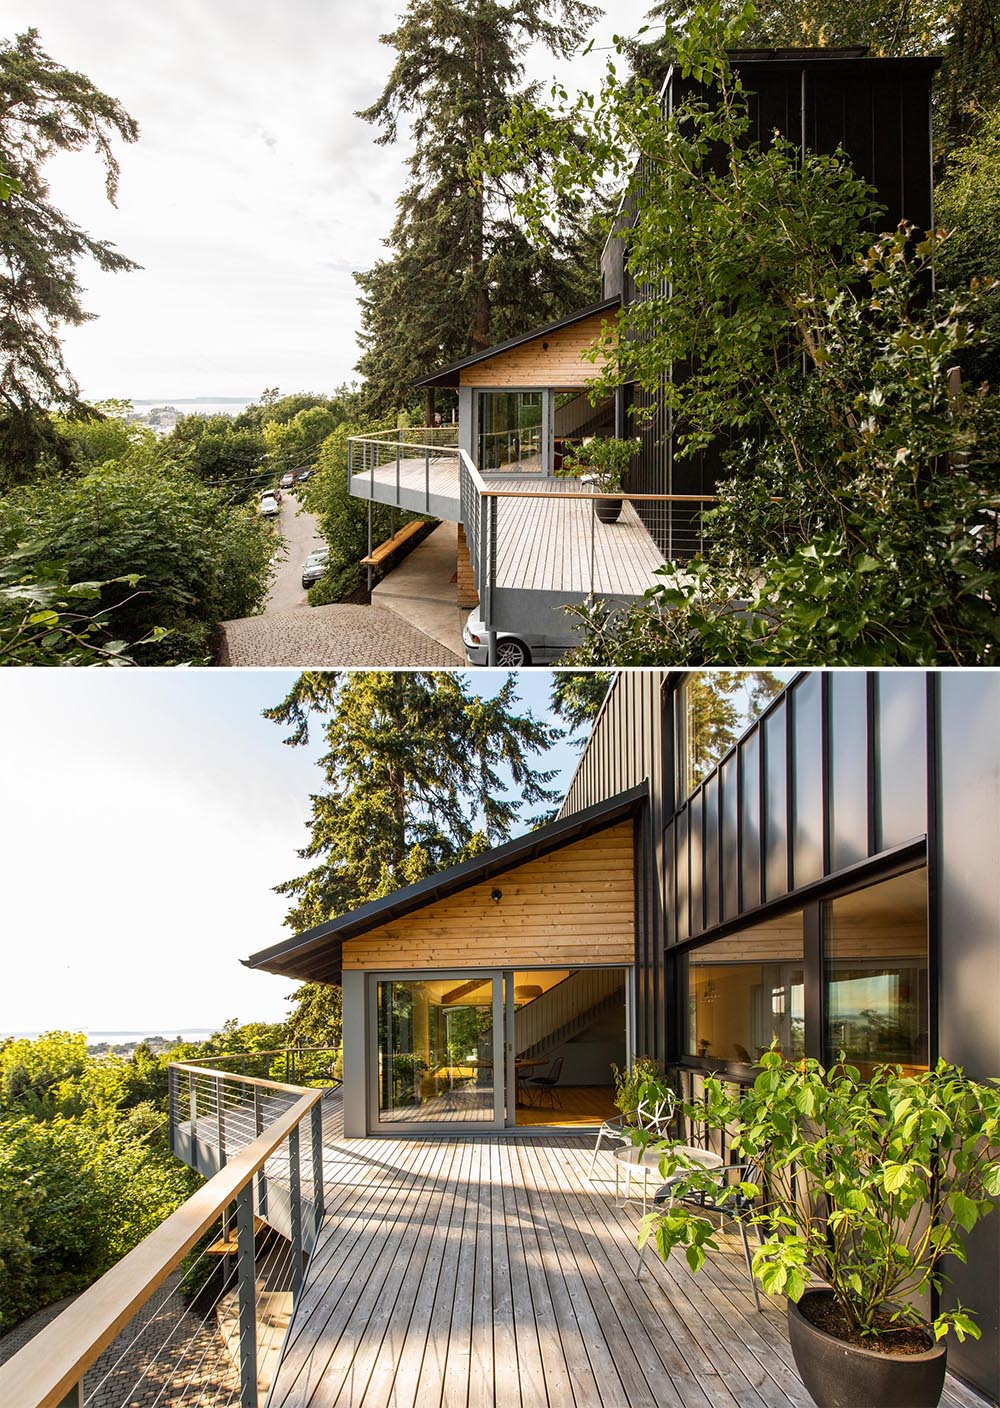 The wrap-around balcony extends the living space of this home.